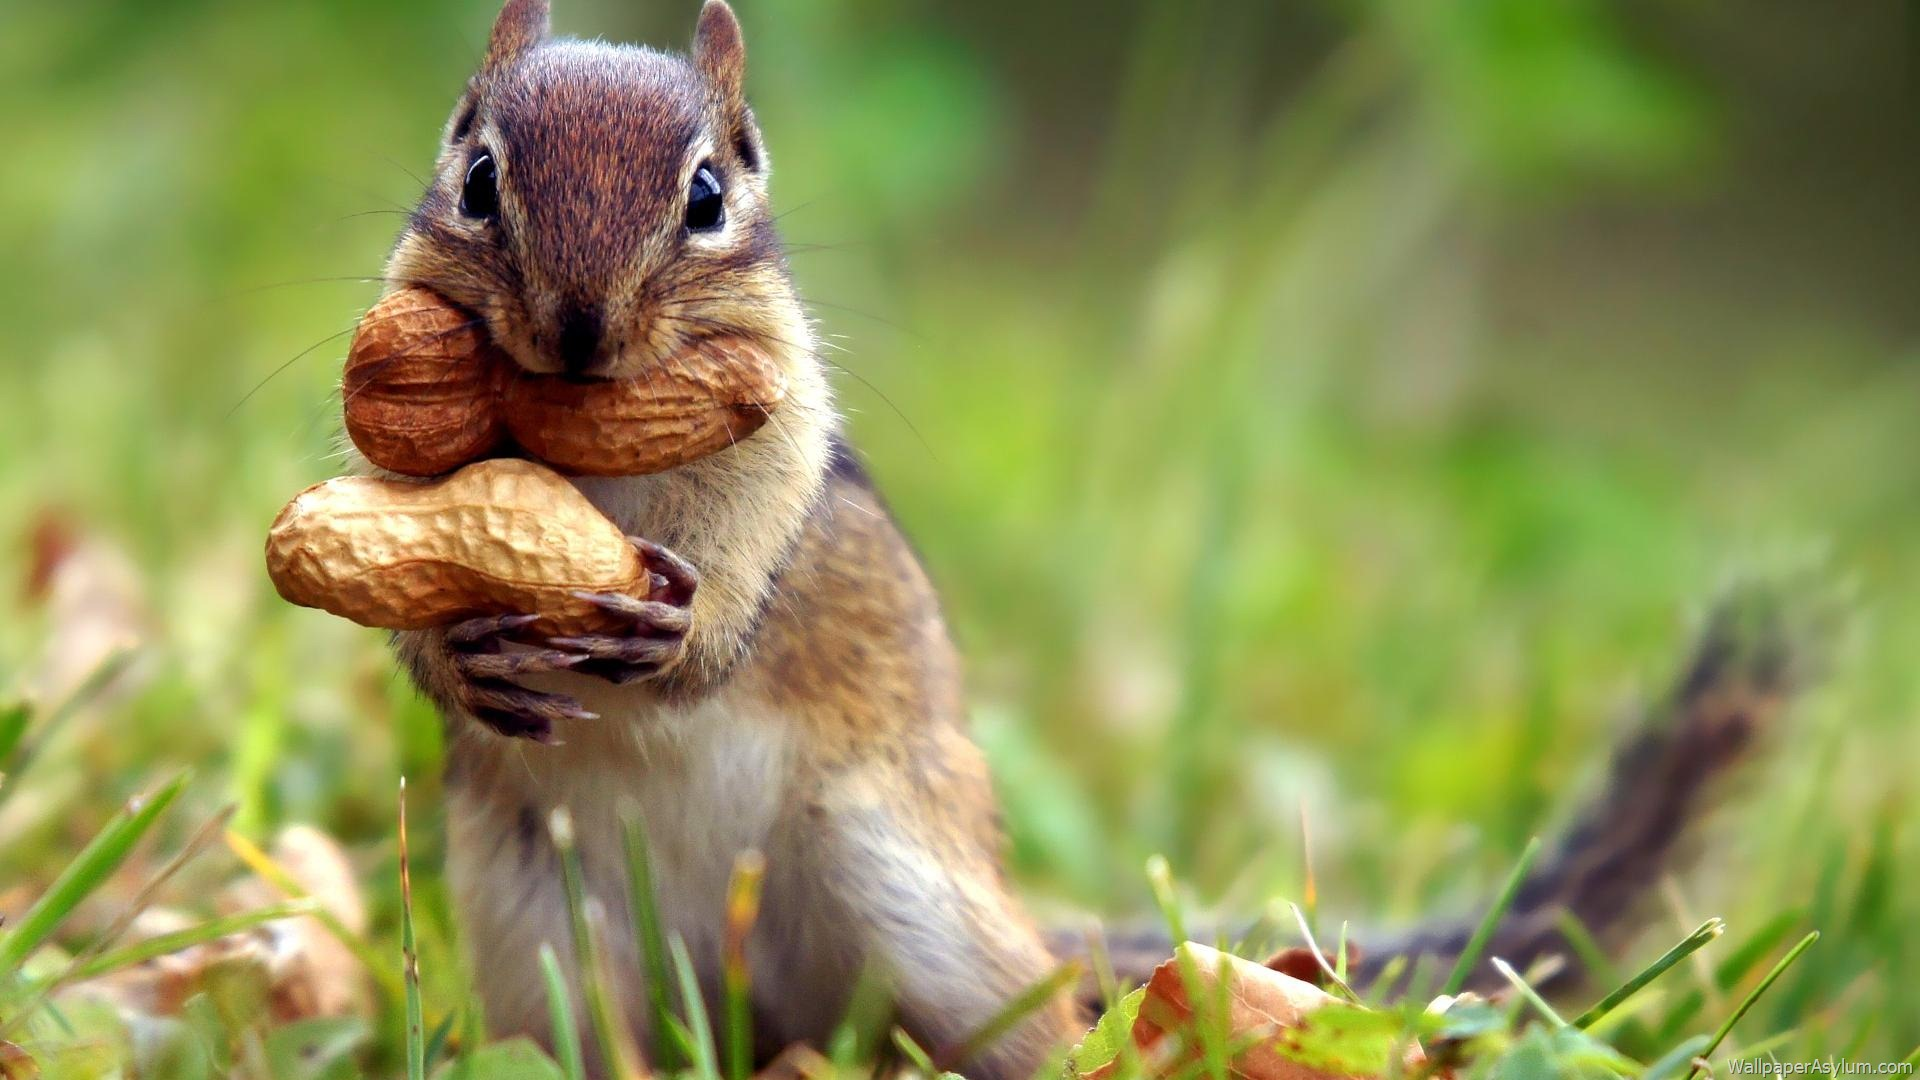 Squirrel Background